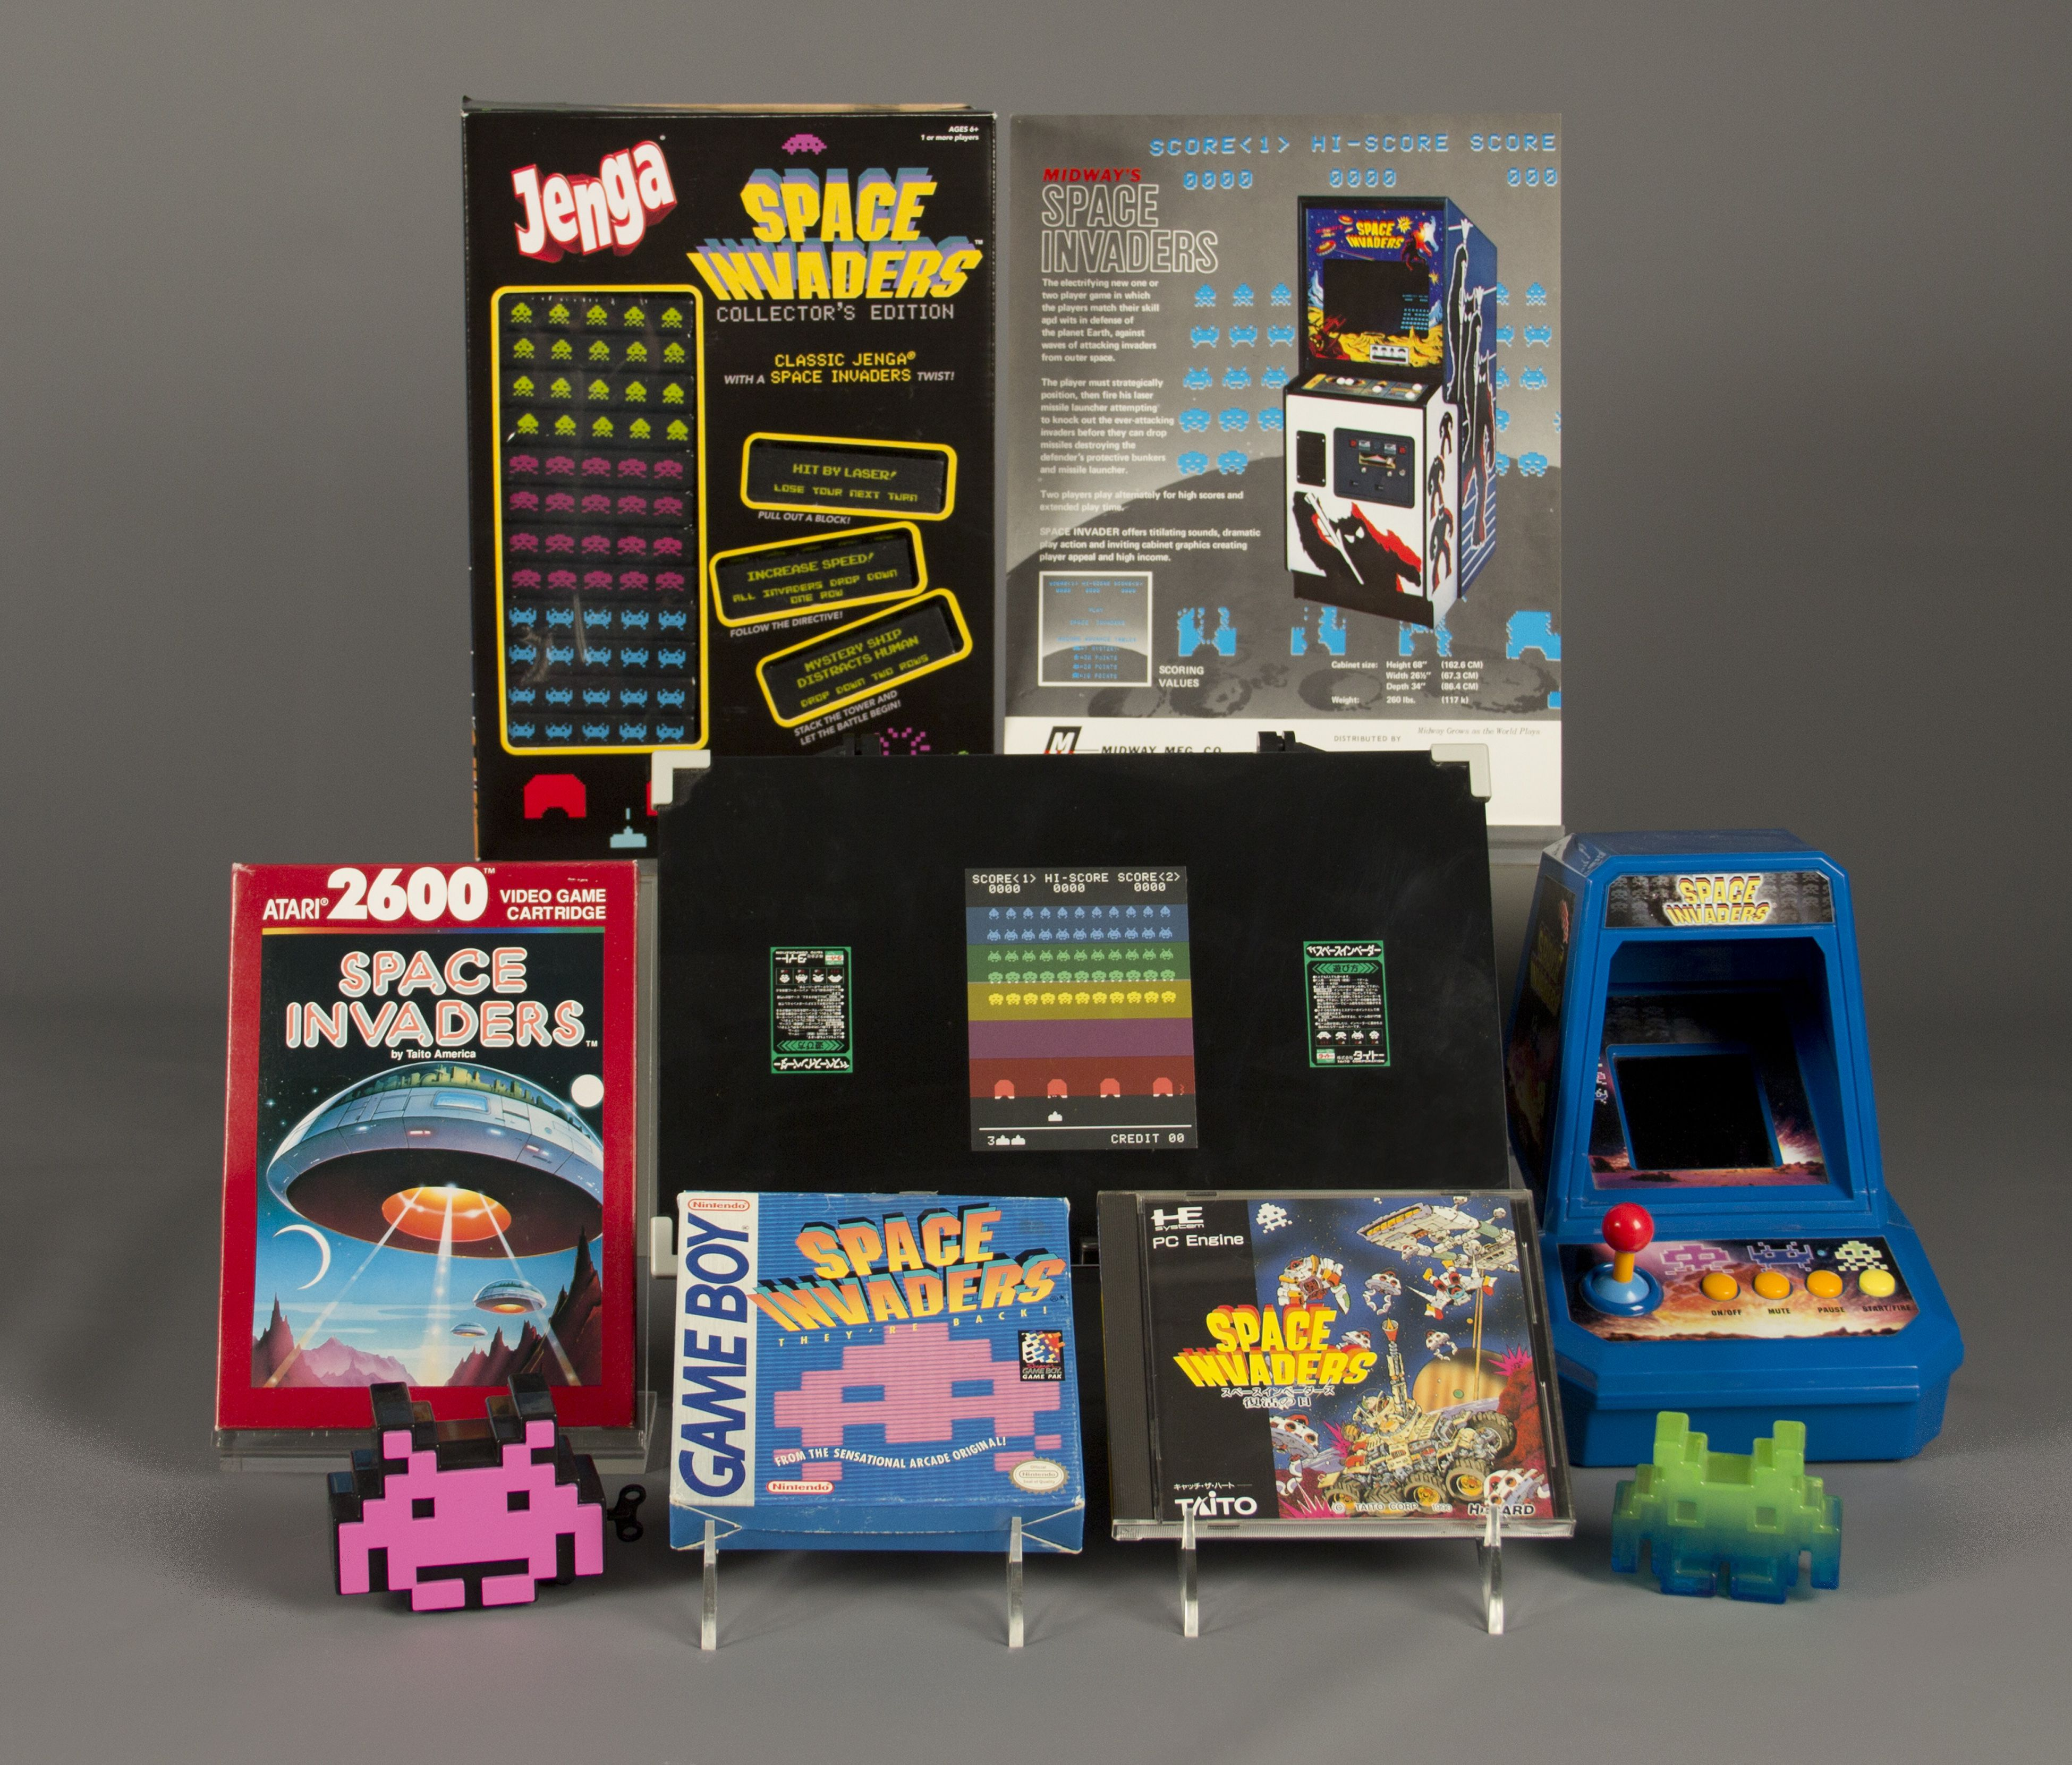 2016 World Video Game Hall of Fame inductee